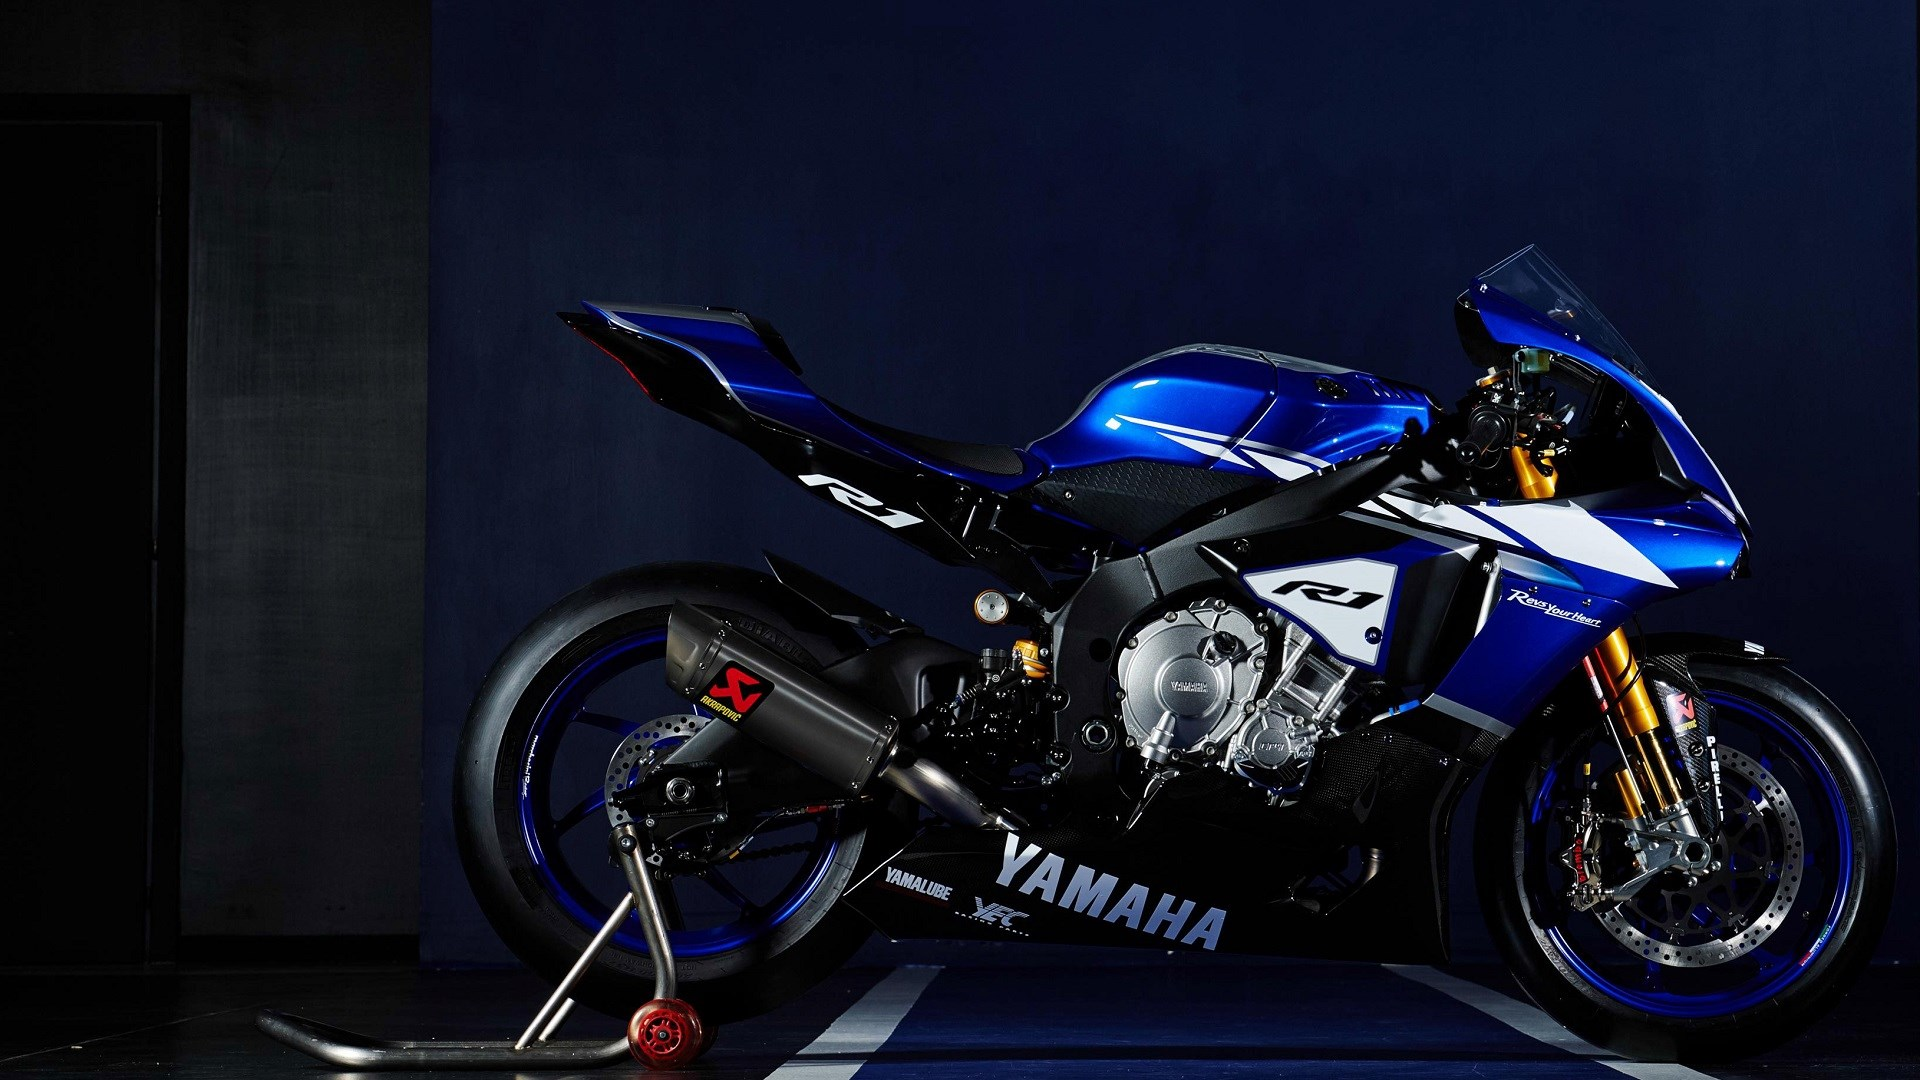 yamaha yzf r1 motorcycle wallpaper